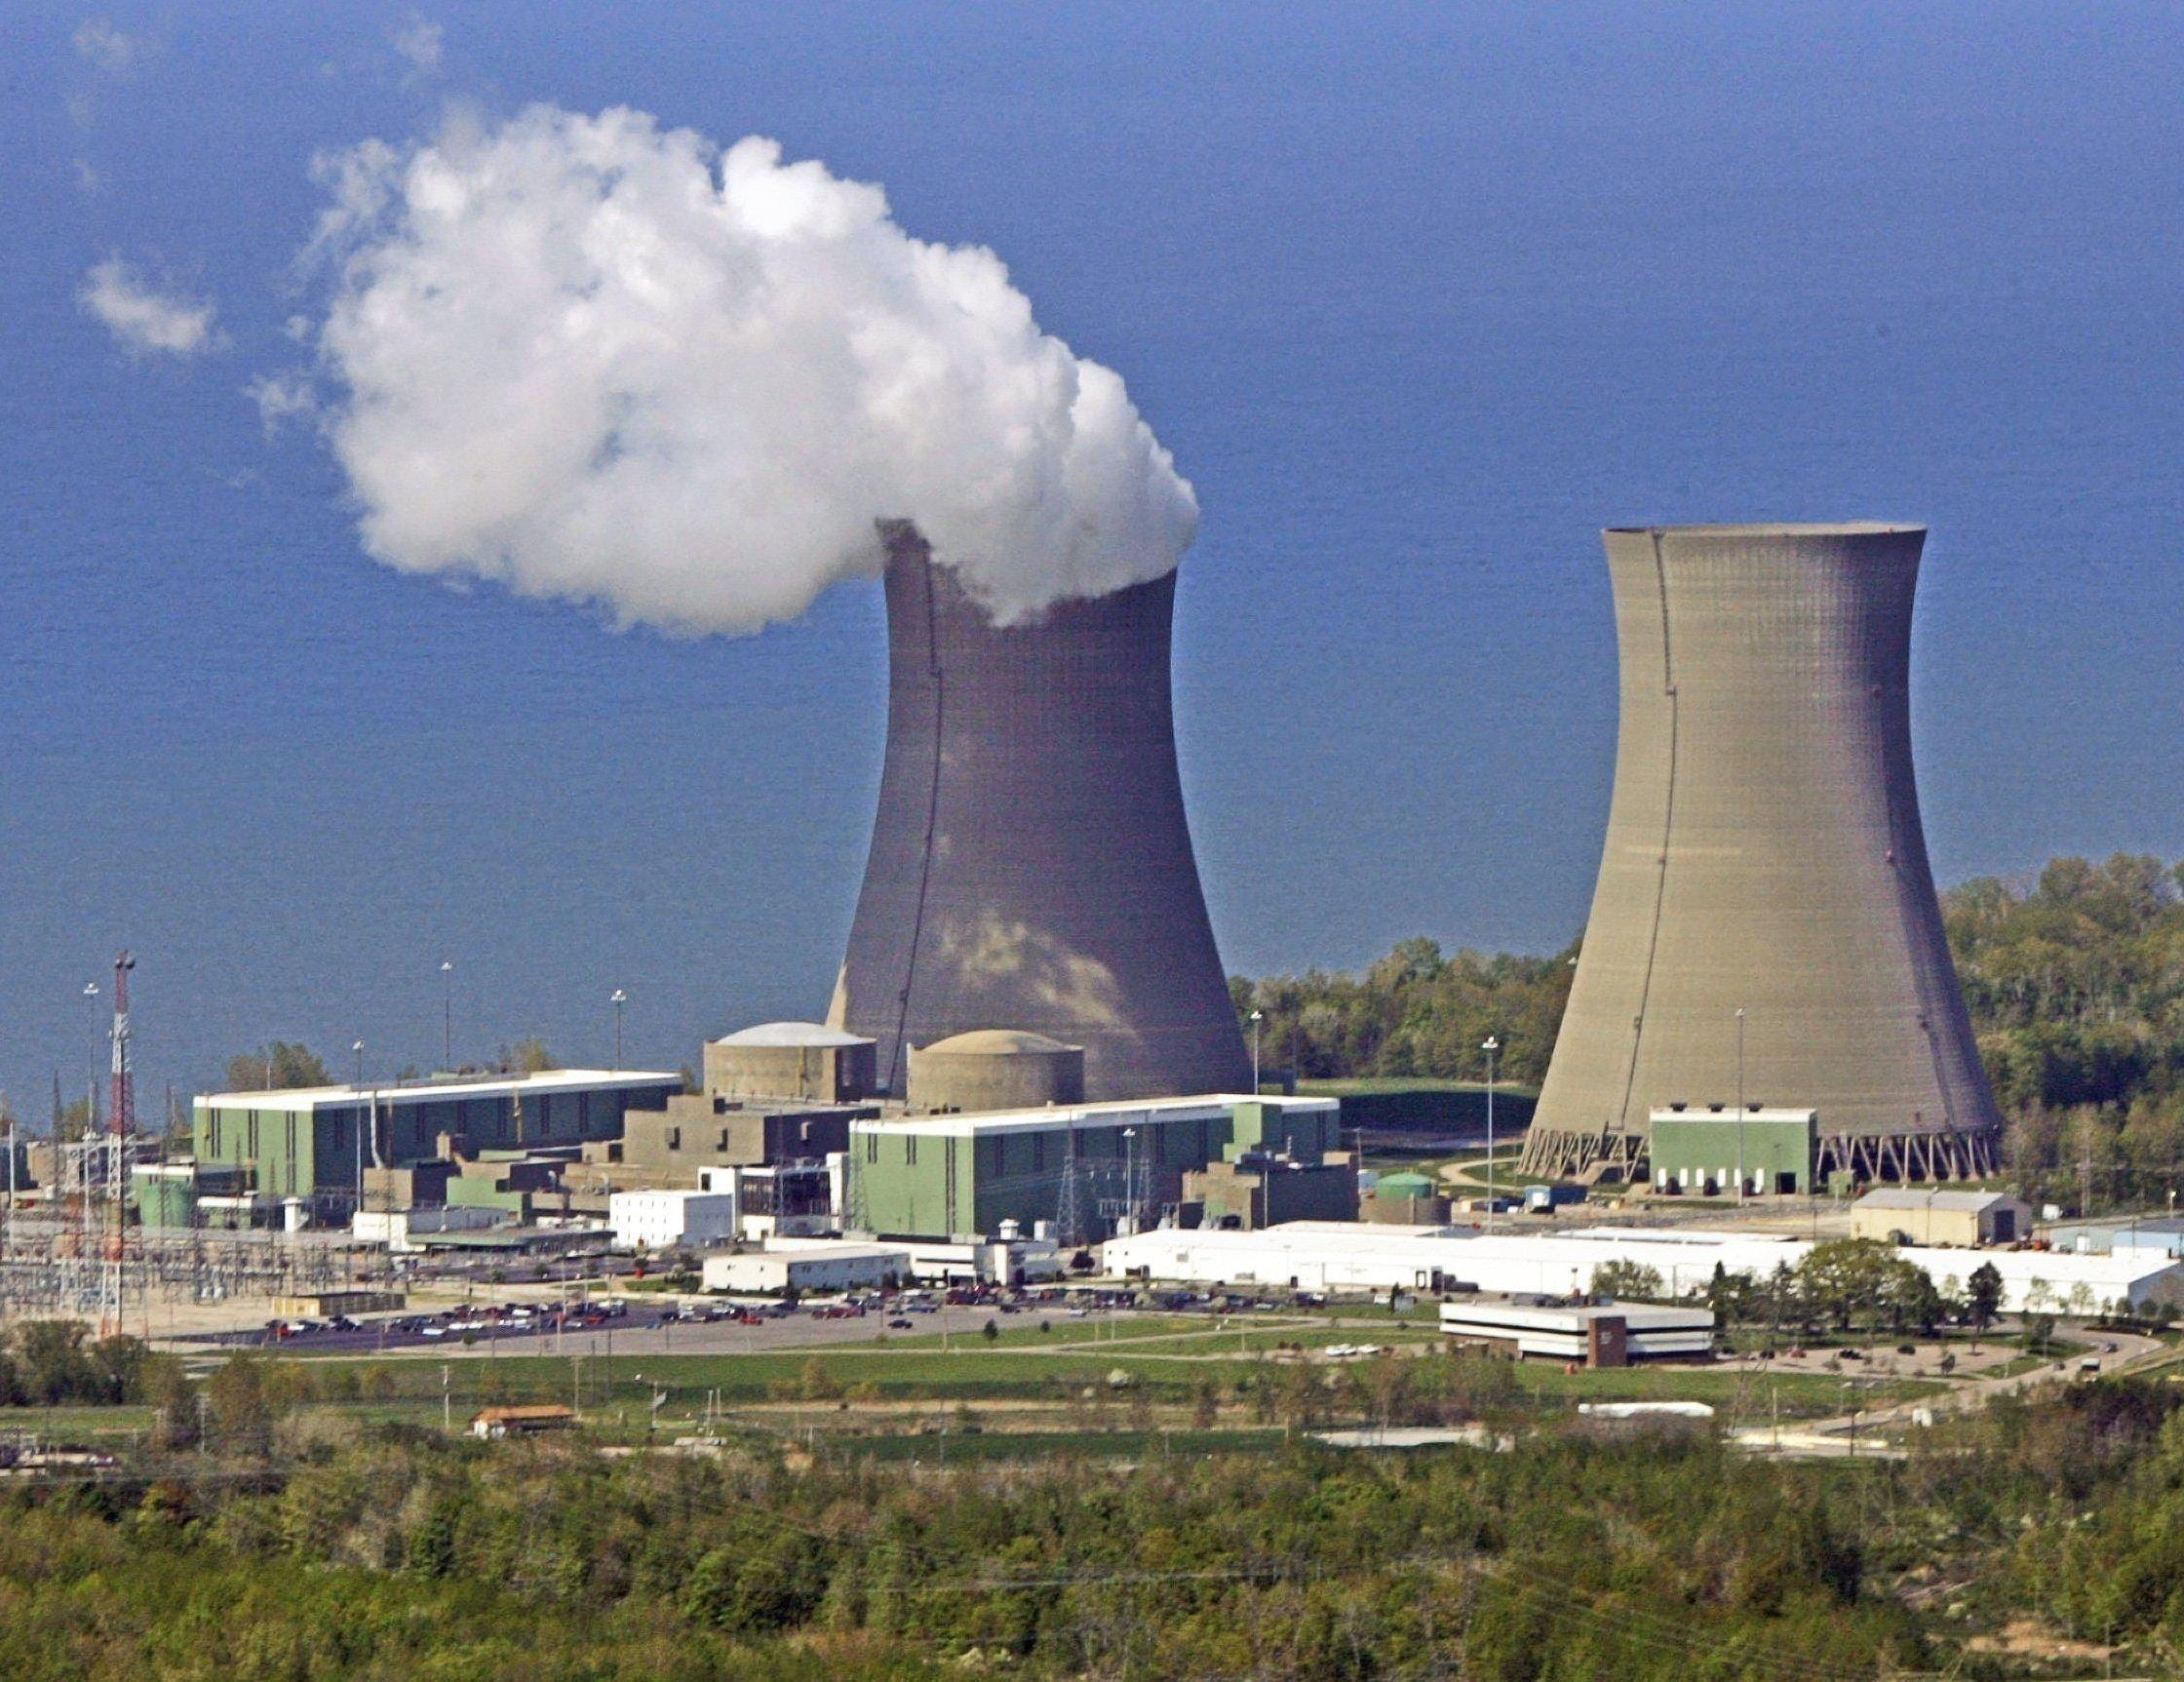 The Perry Nuclear Power Plant in Lake County, along with the Davis-Besse plant in Ottowa County, were beneficiaries of House Bill 6, which is under fire since the Statehouse bribery and racketeering scandal involving former Ohio House Speaker Larry Householder and four associates erupted in July.